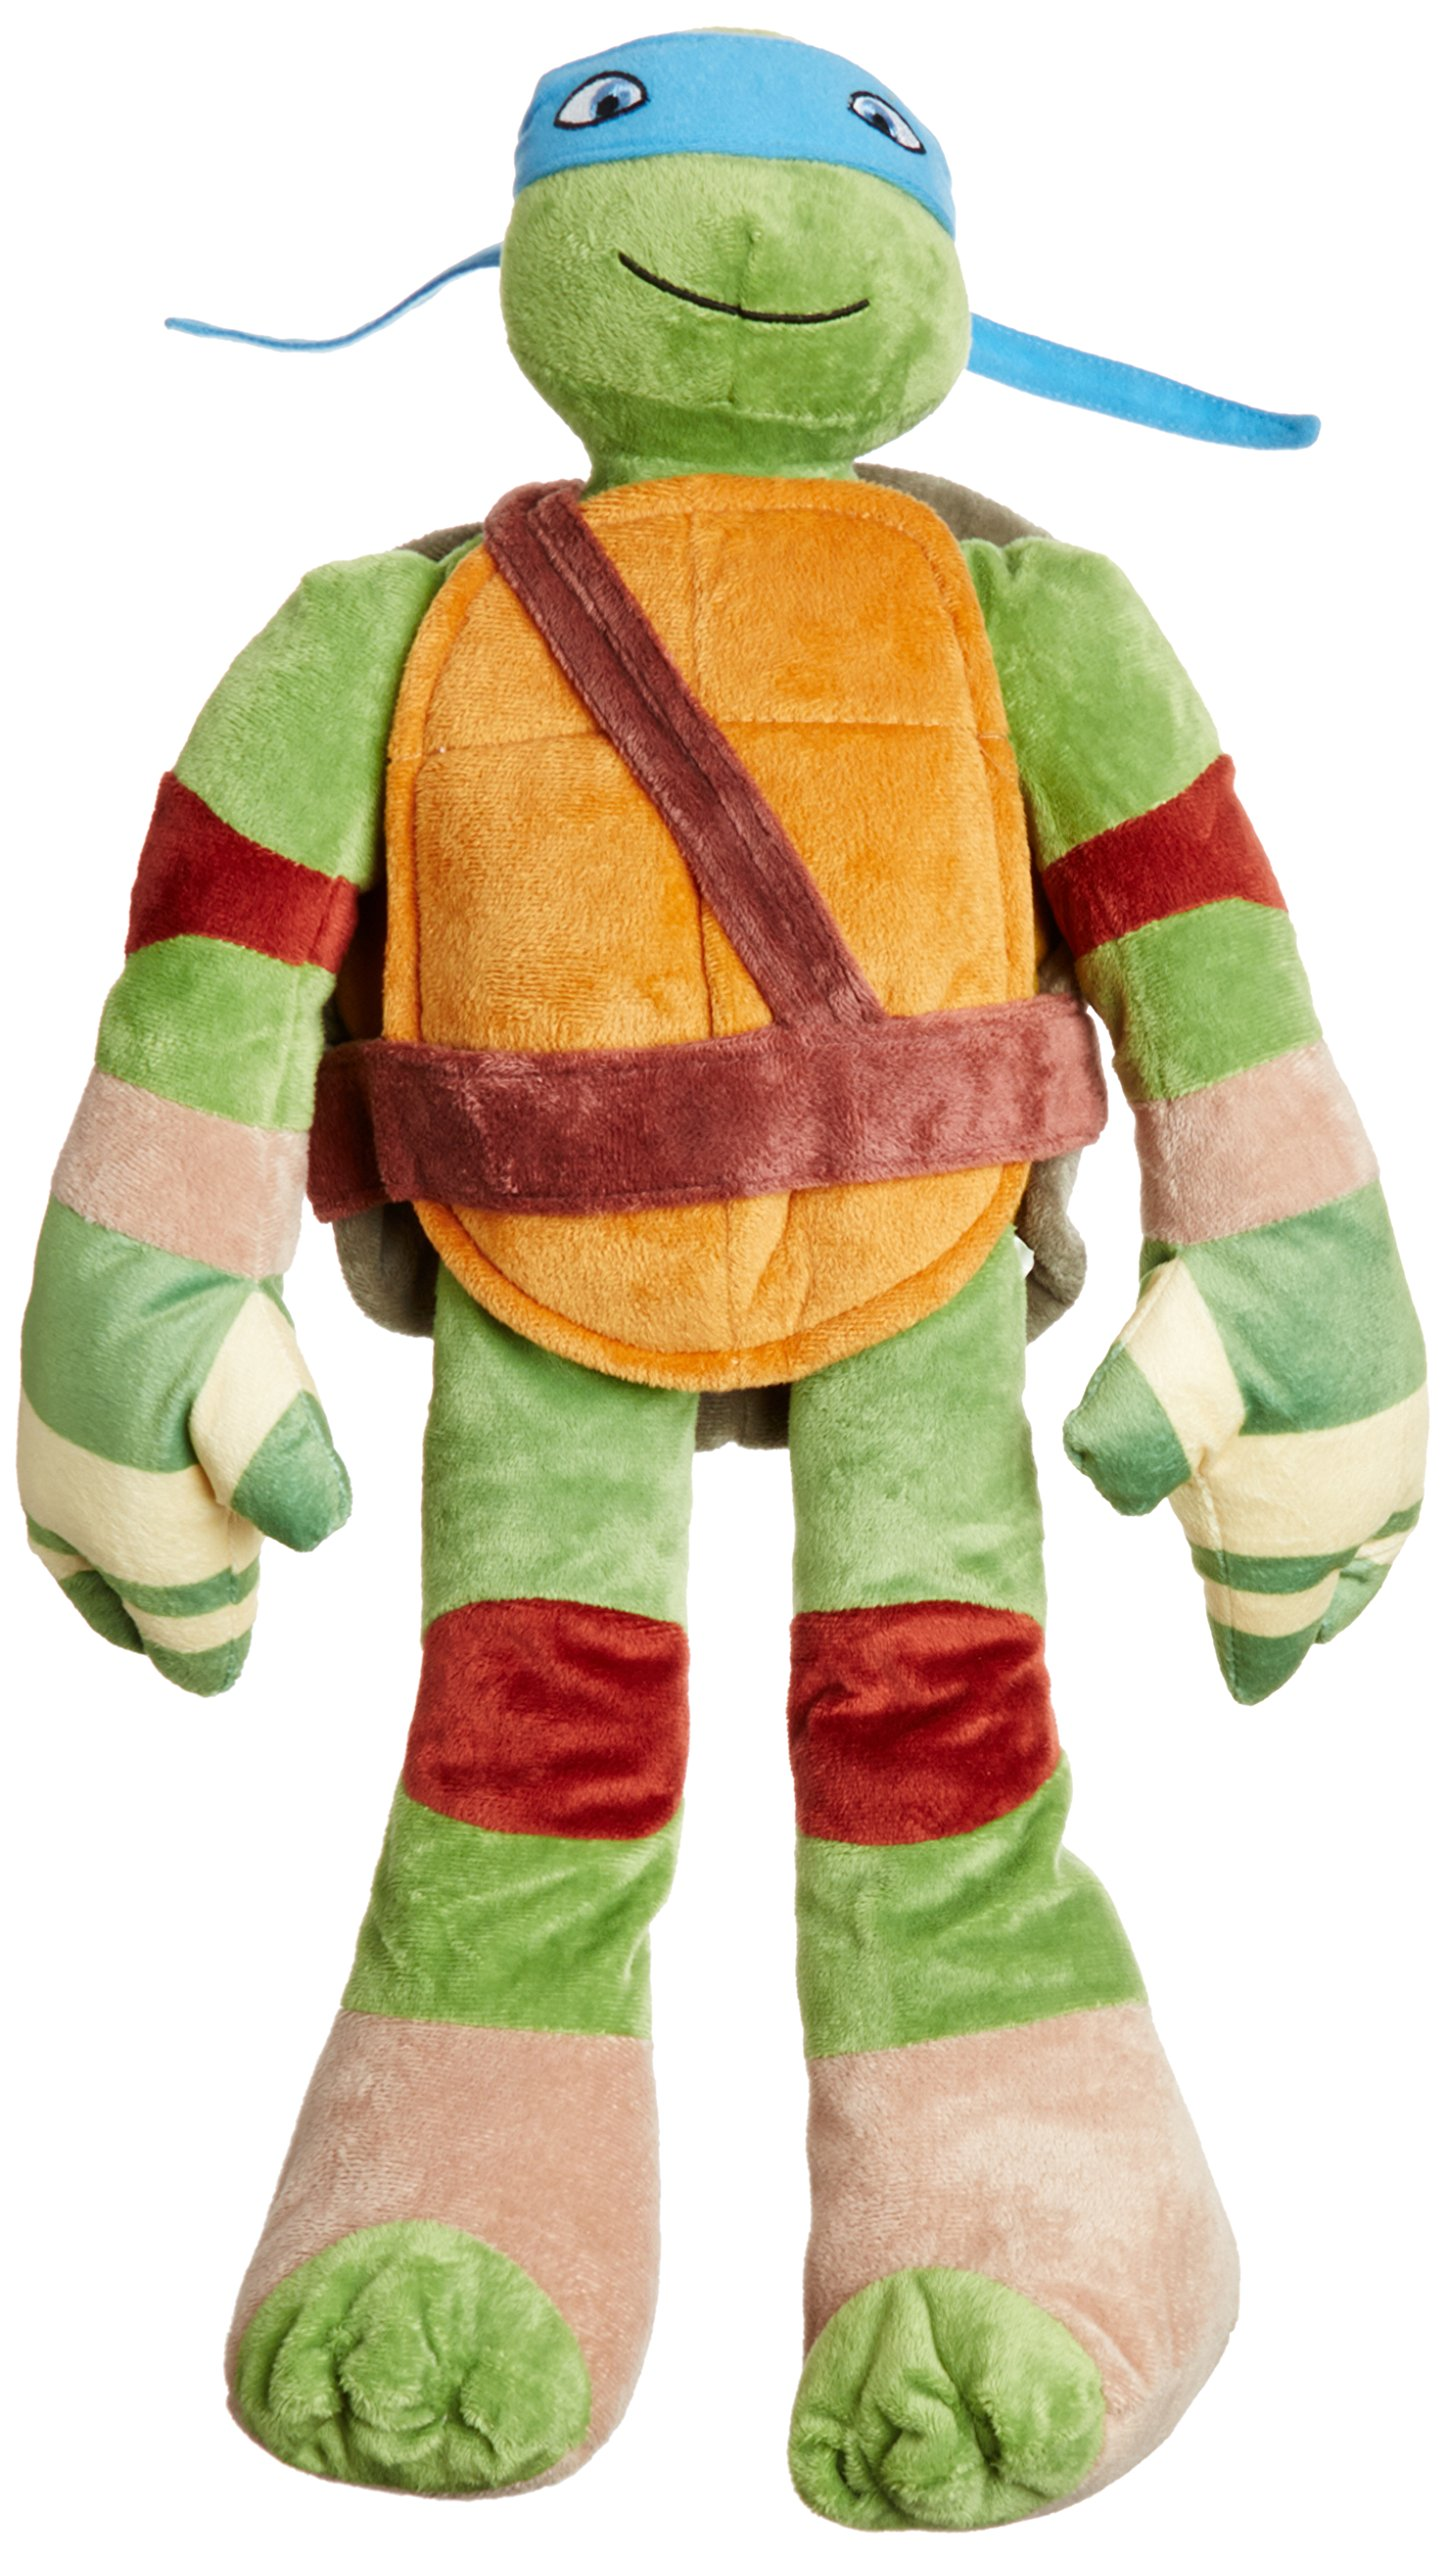 Nickelodeon Teenage Mutant Ninja Turtles Pillowtime Pal Pillow, Leonardo by Nickelodeon